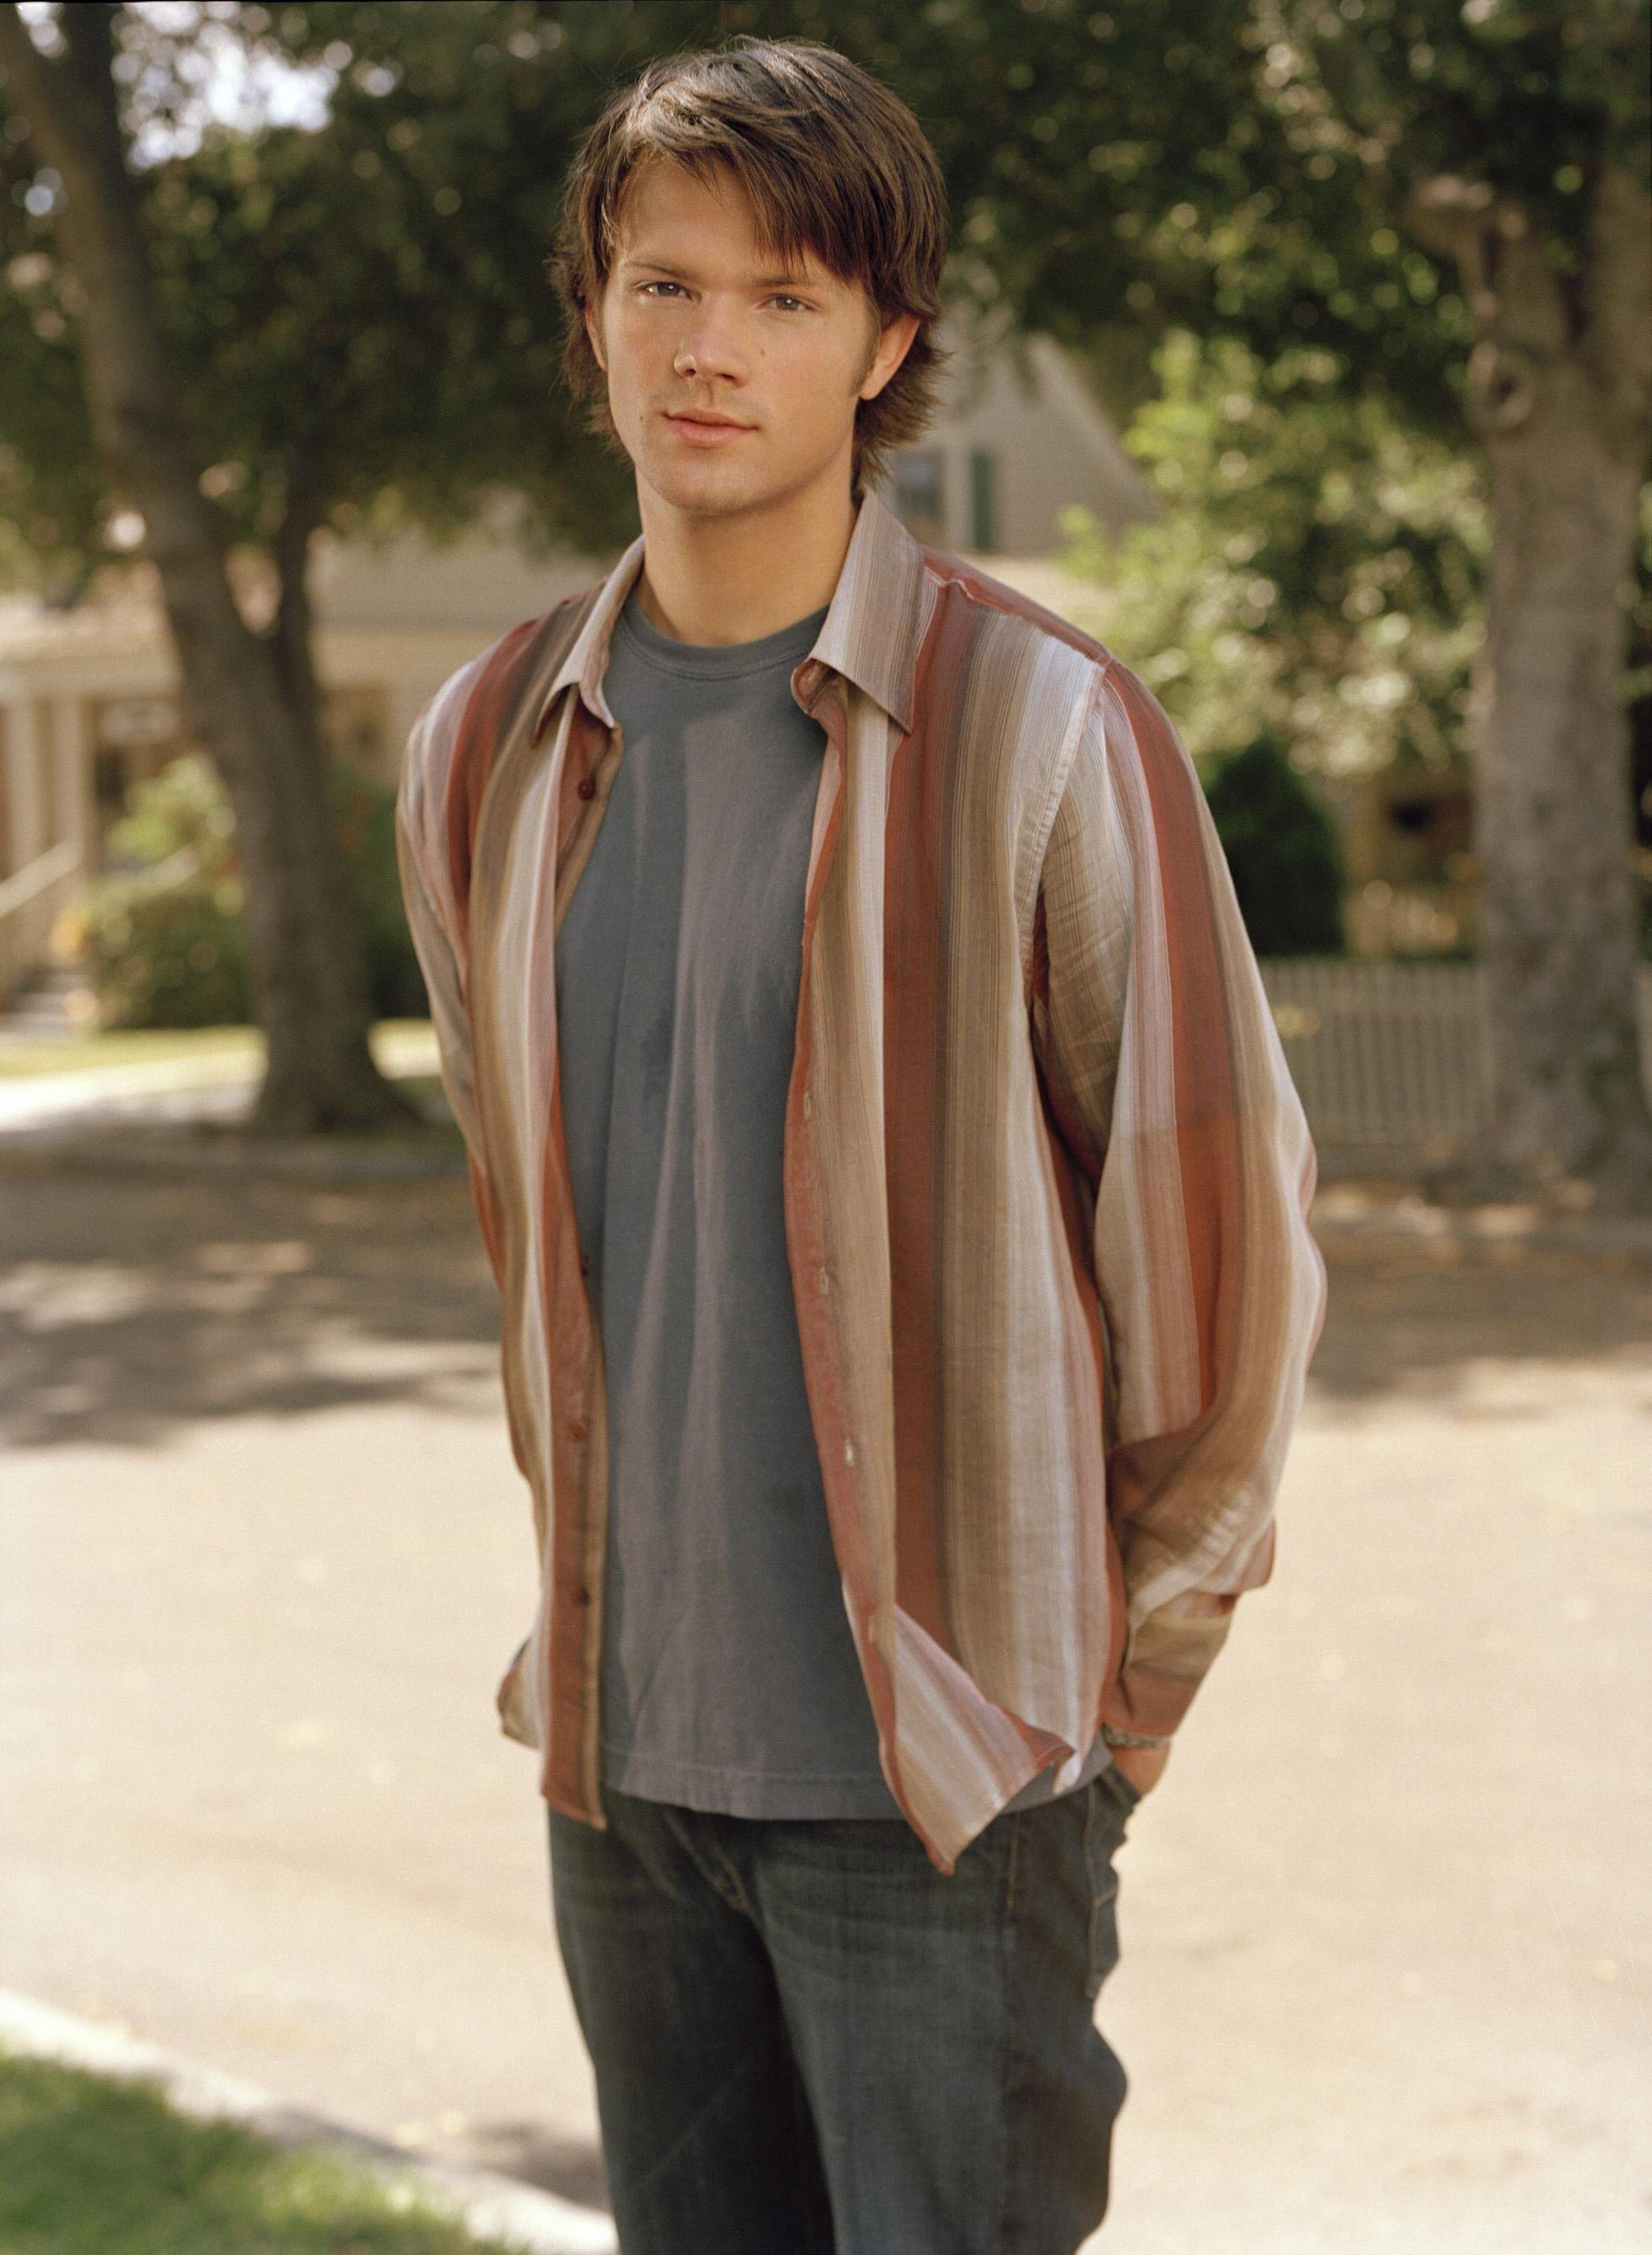 Serie - Jared - Gilmore Girls